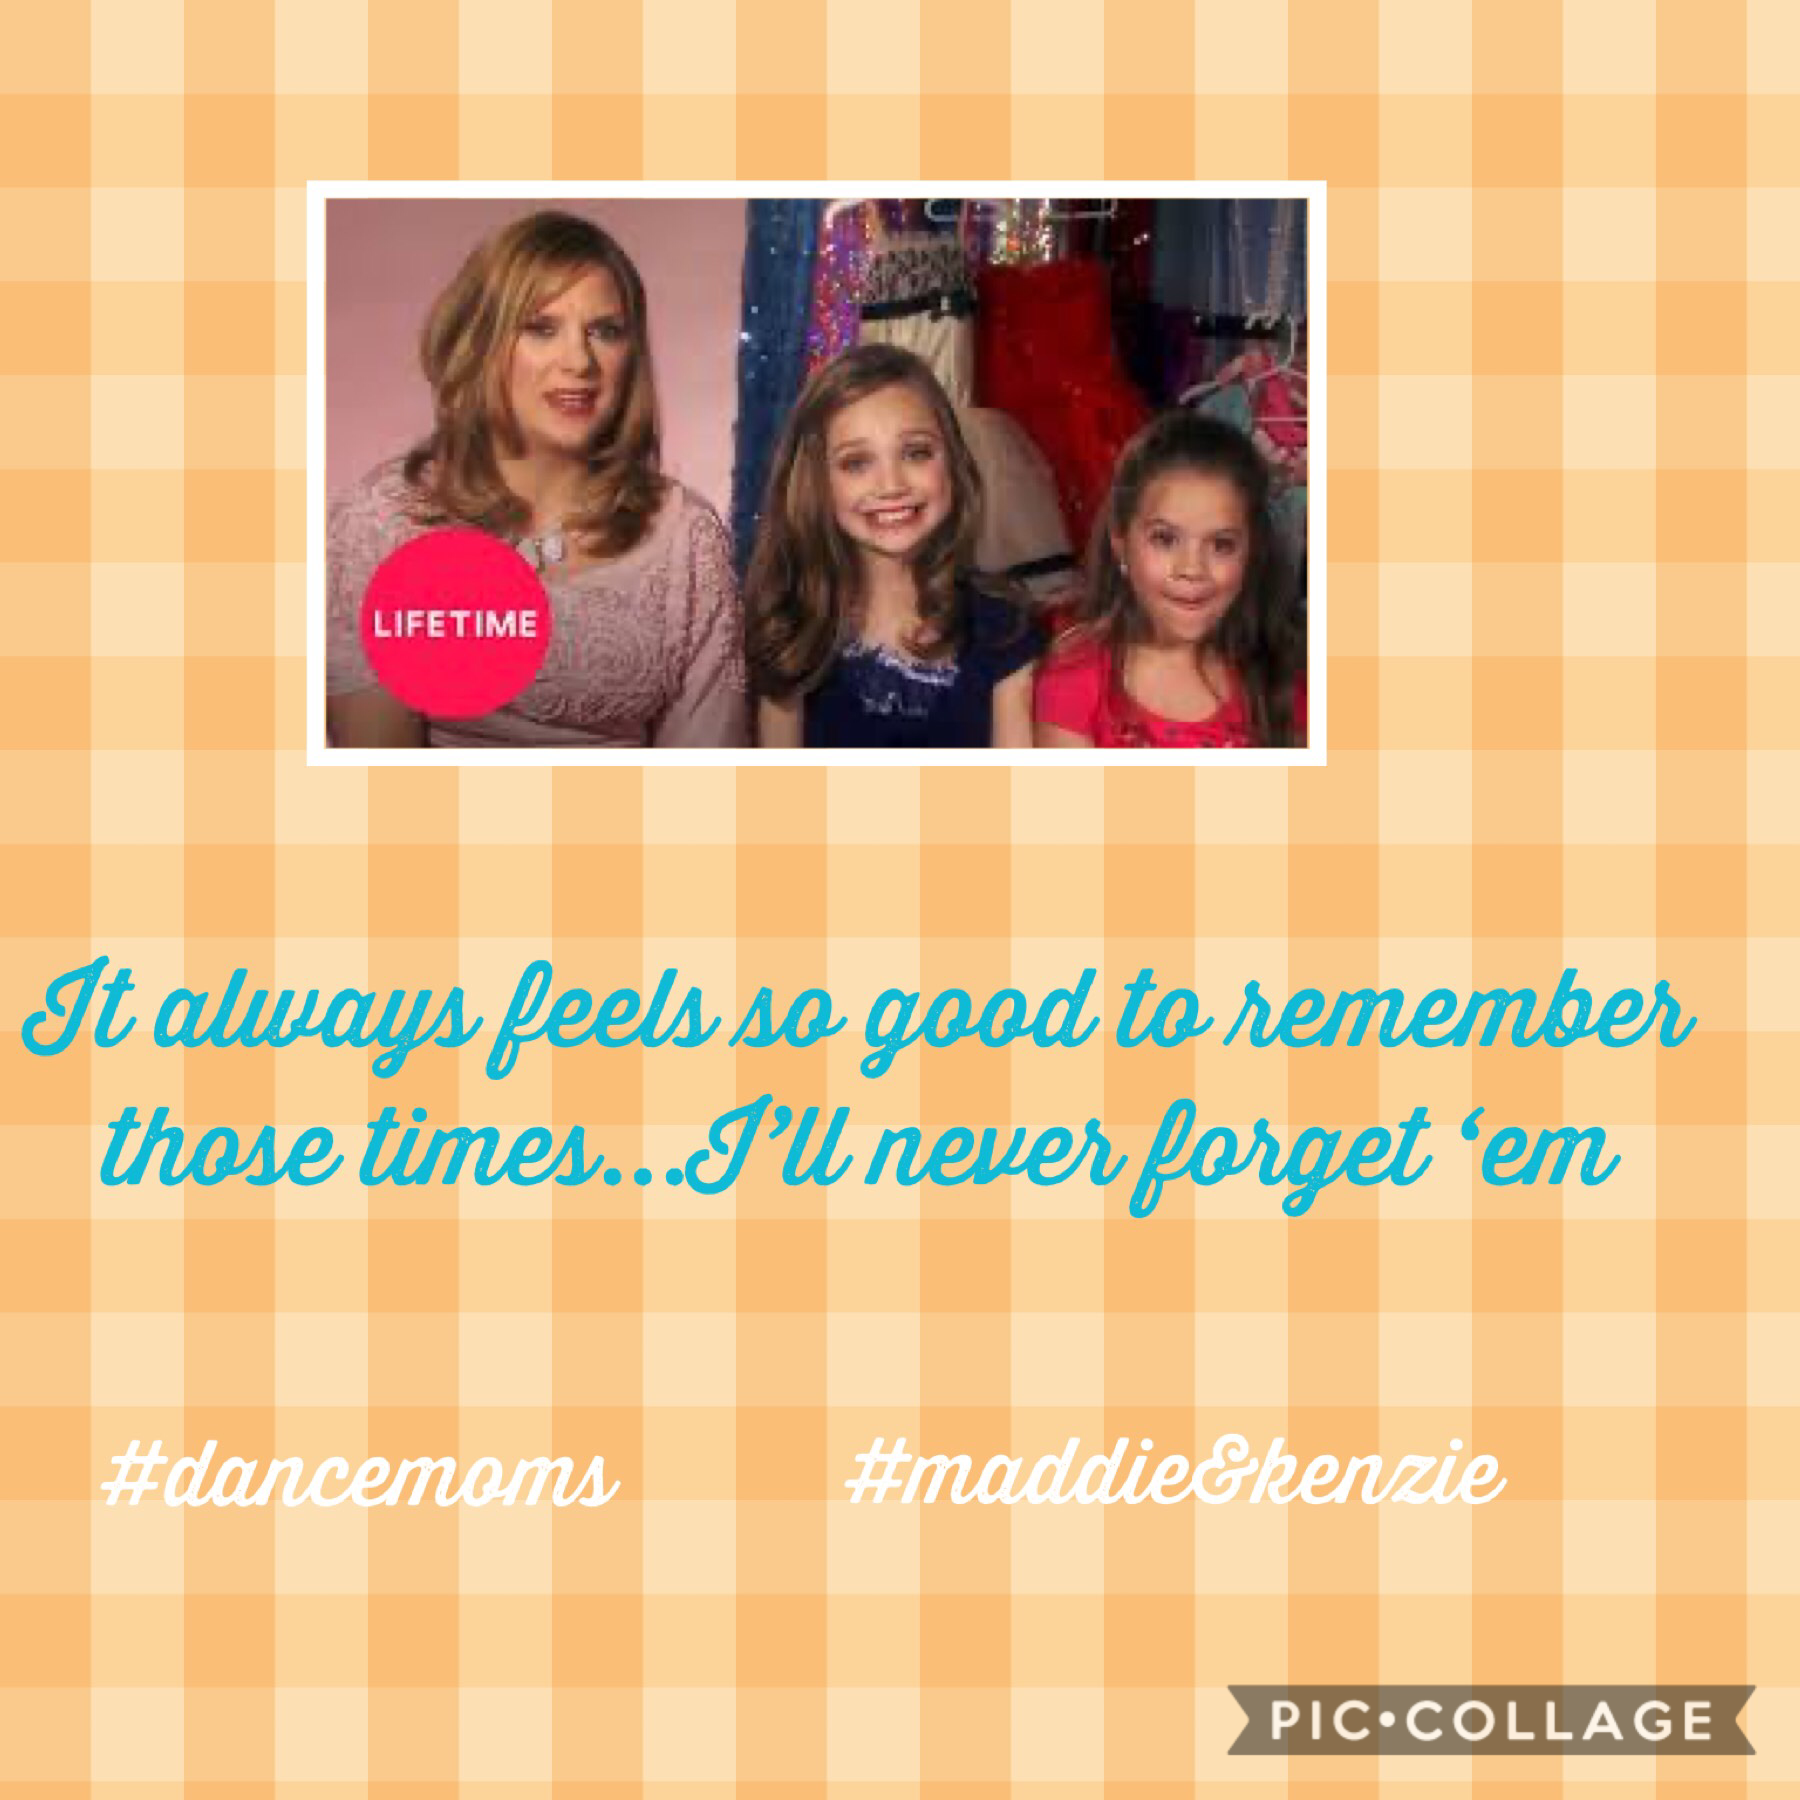 """For the ones that don't know, I am and I'll always be a HUGE fan of Dance Moms. Maddie and Kenzie are soo awesome, wish they could just come back(I don't really care if they're """"too old for this"""")😂😂😂😂"""